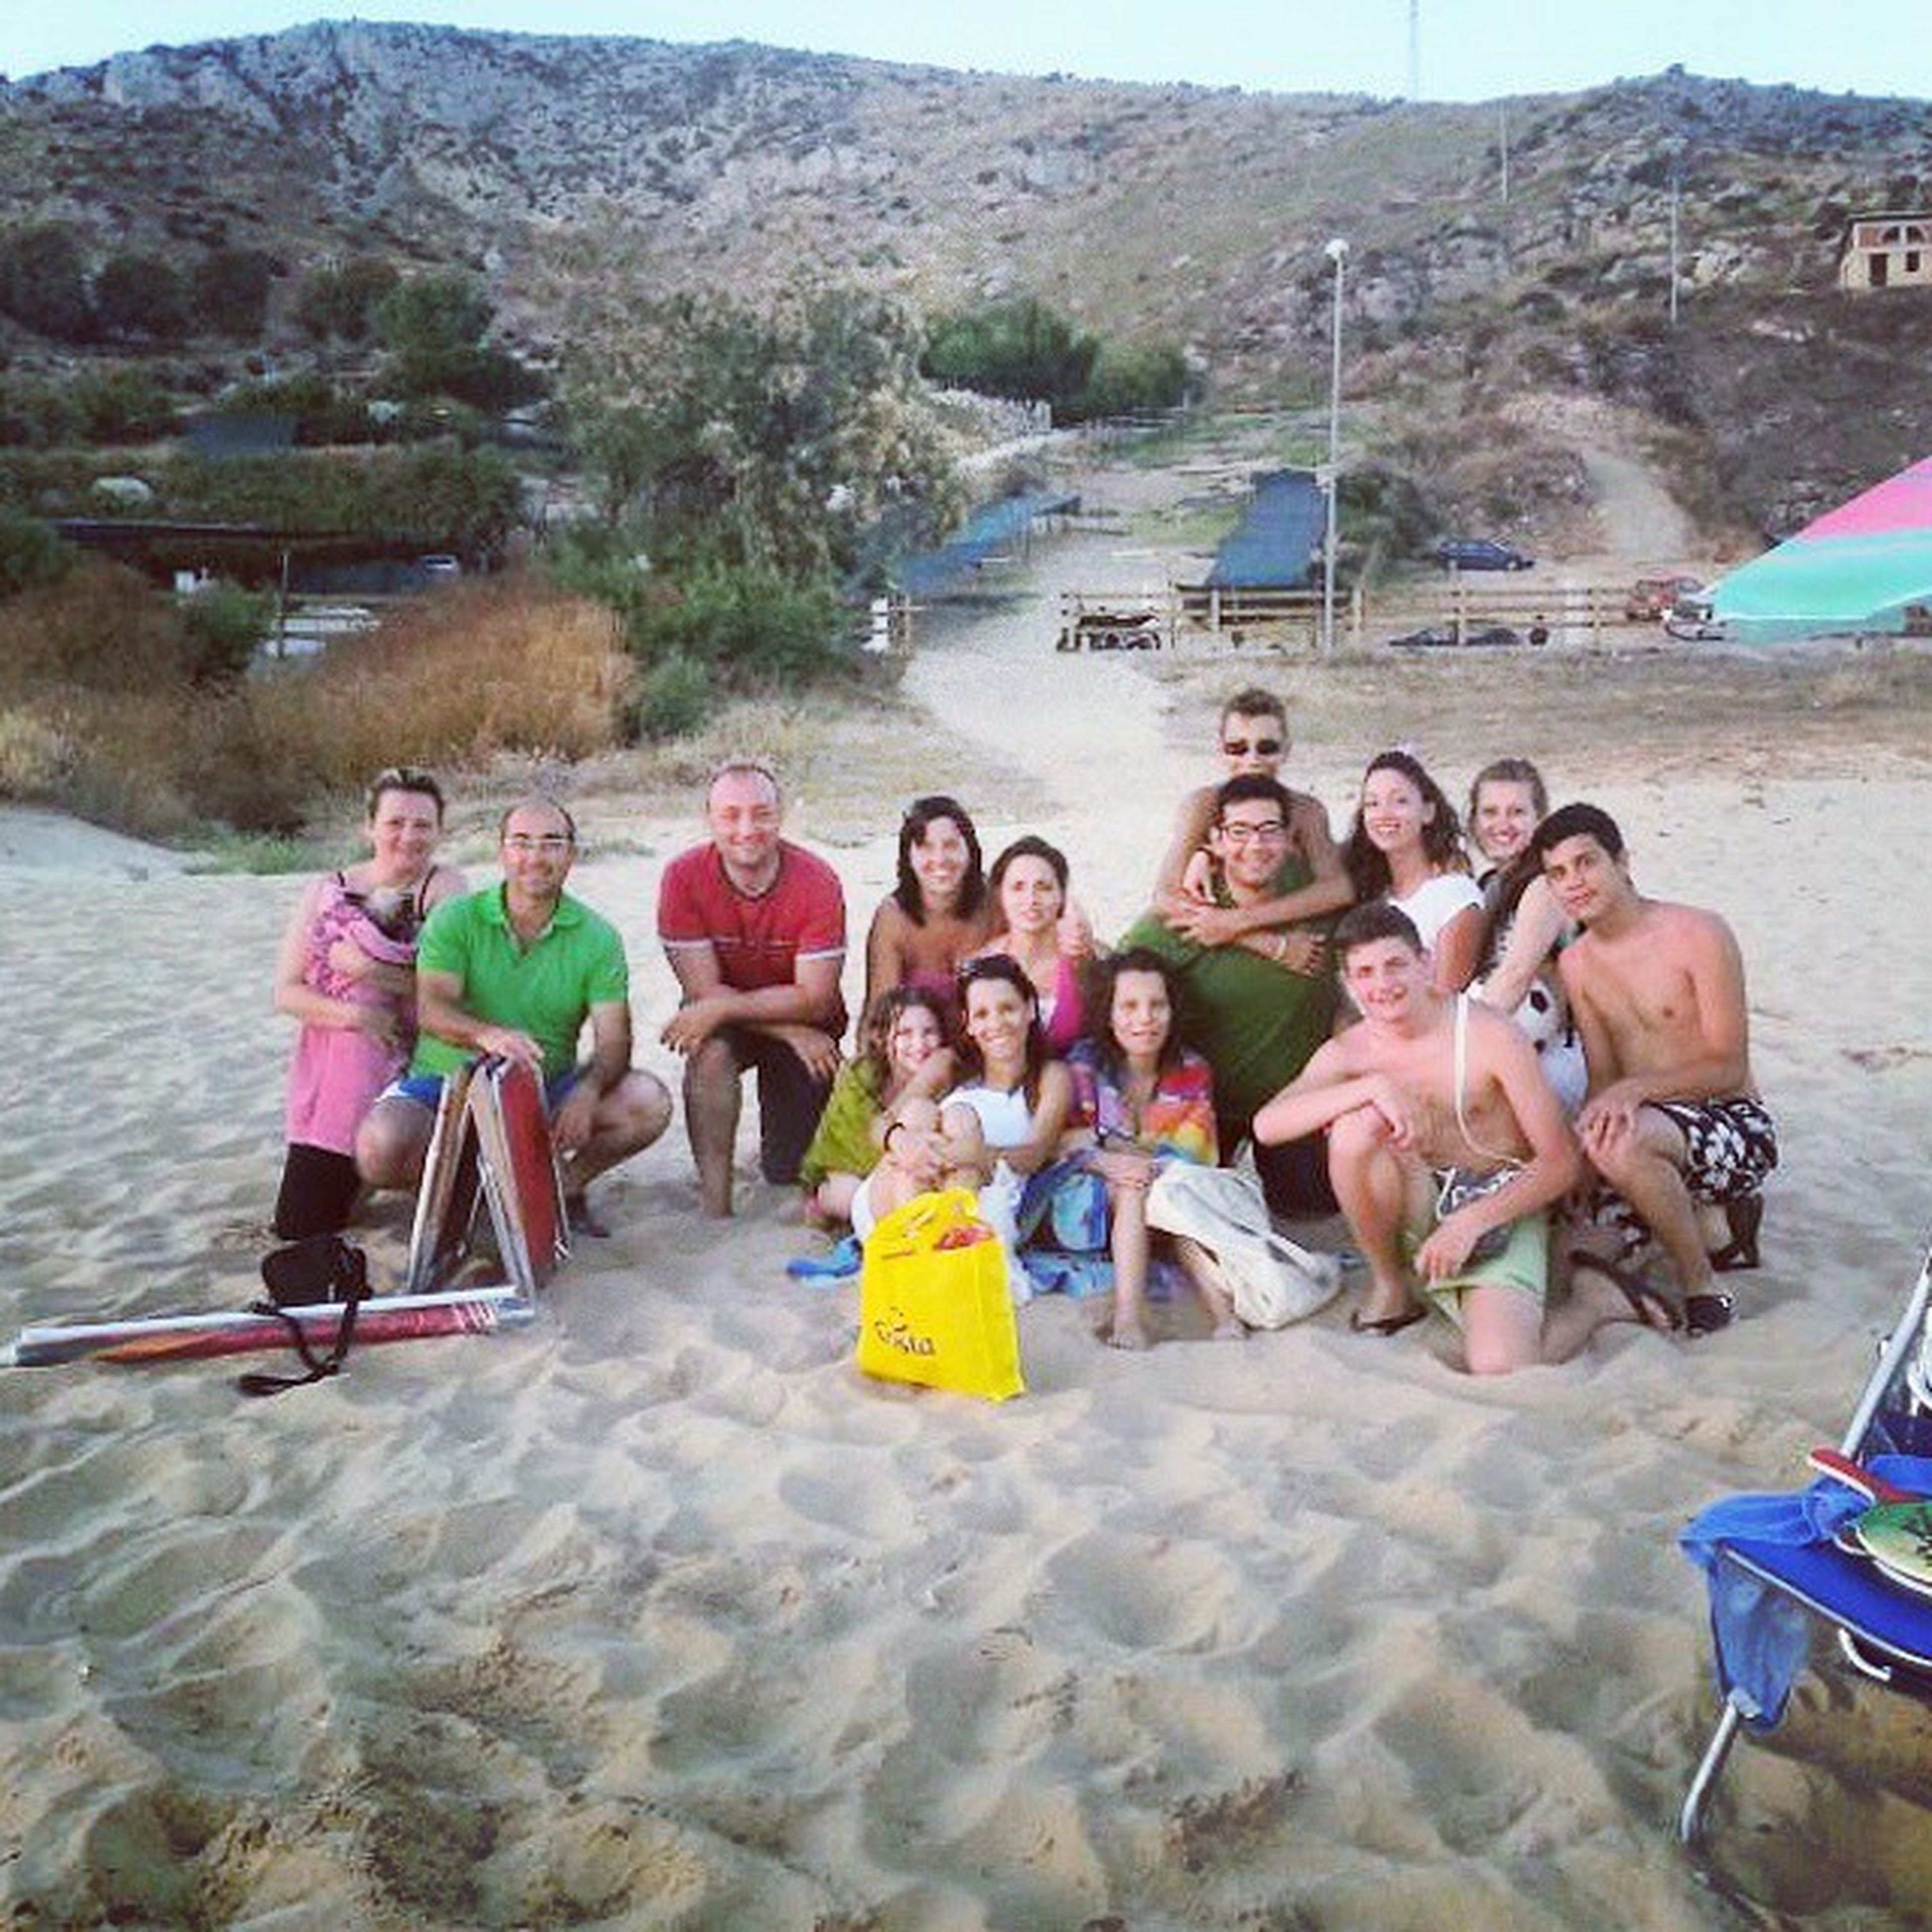 lifestyles, leisure activity, water, vacations, mountain, casual clothing, person, travel, full length, transportation, men, day, rock - object, tourist, outdoors, large group of people, enjoyment, tourism